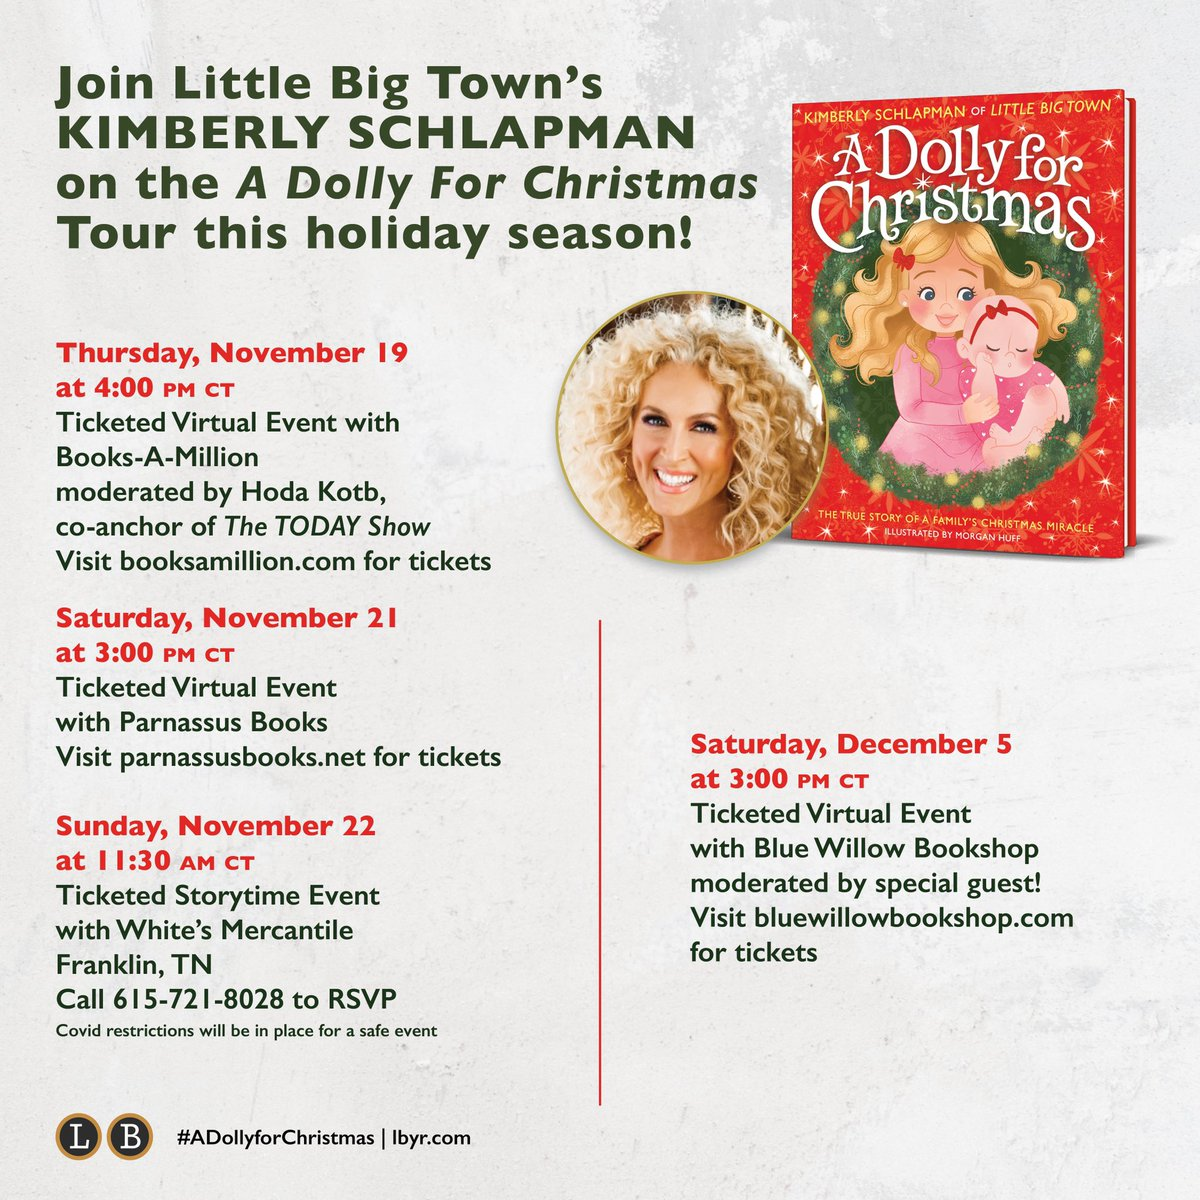 So excited for these next few stops on my book tour! Get your tickets now 💝 #ADollyforChristmas